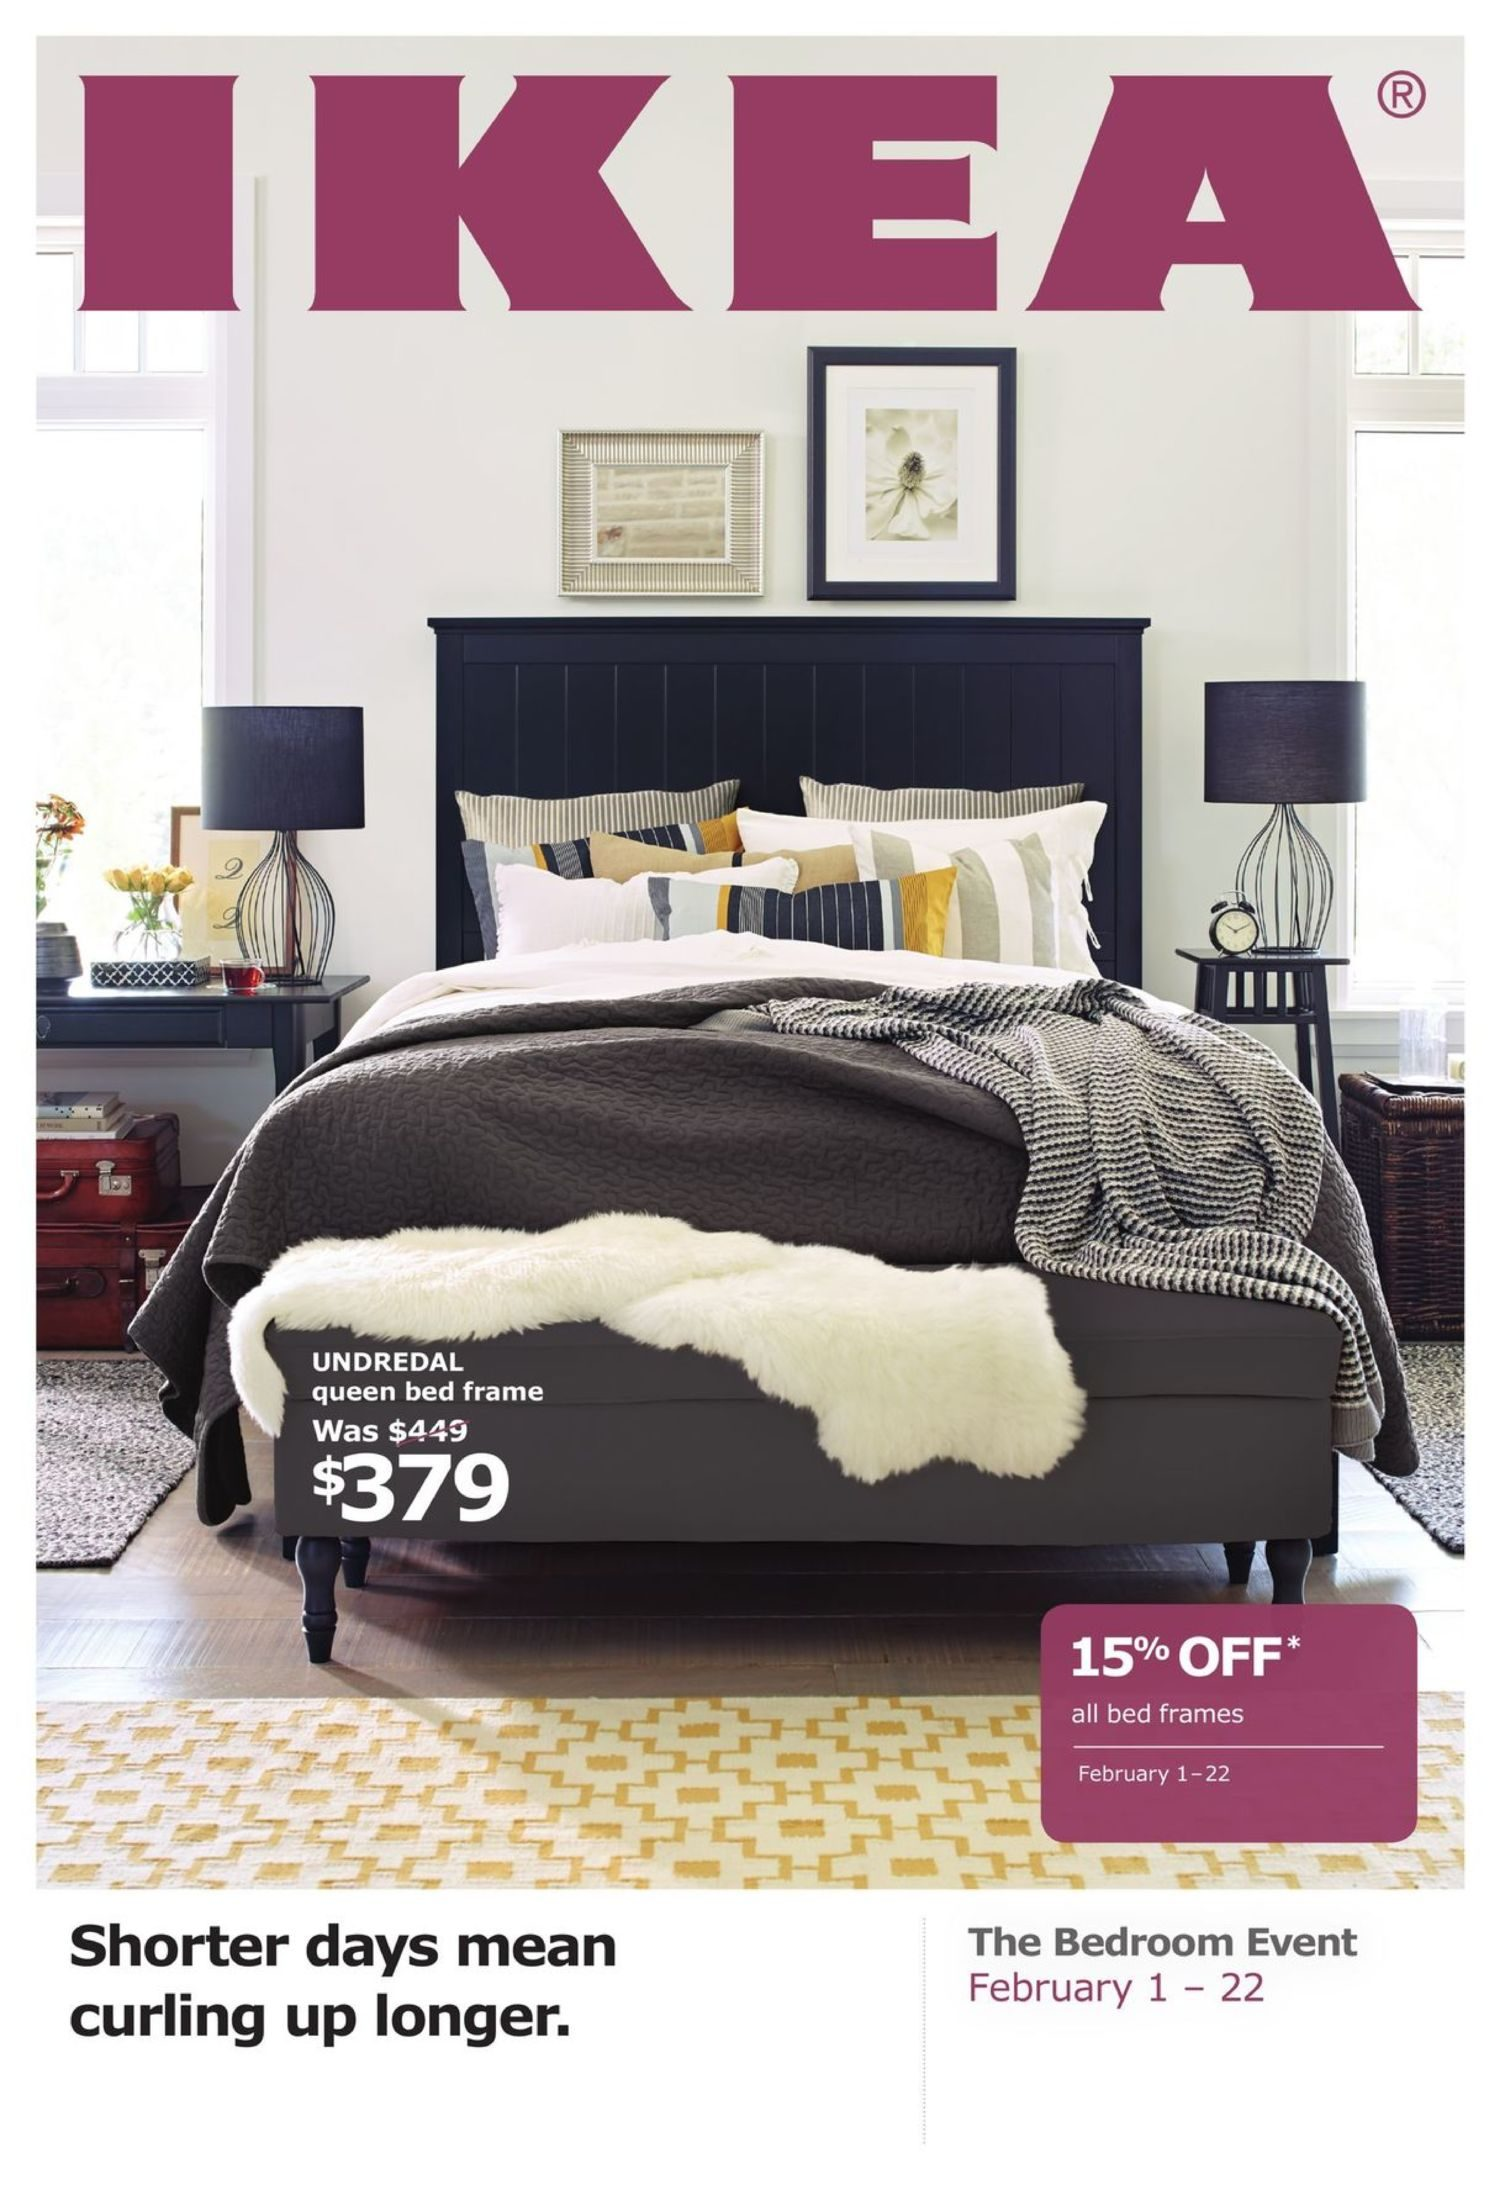 IKEA Weekly Flyer - The Bedroom Event - Shorter Days Mean Curling